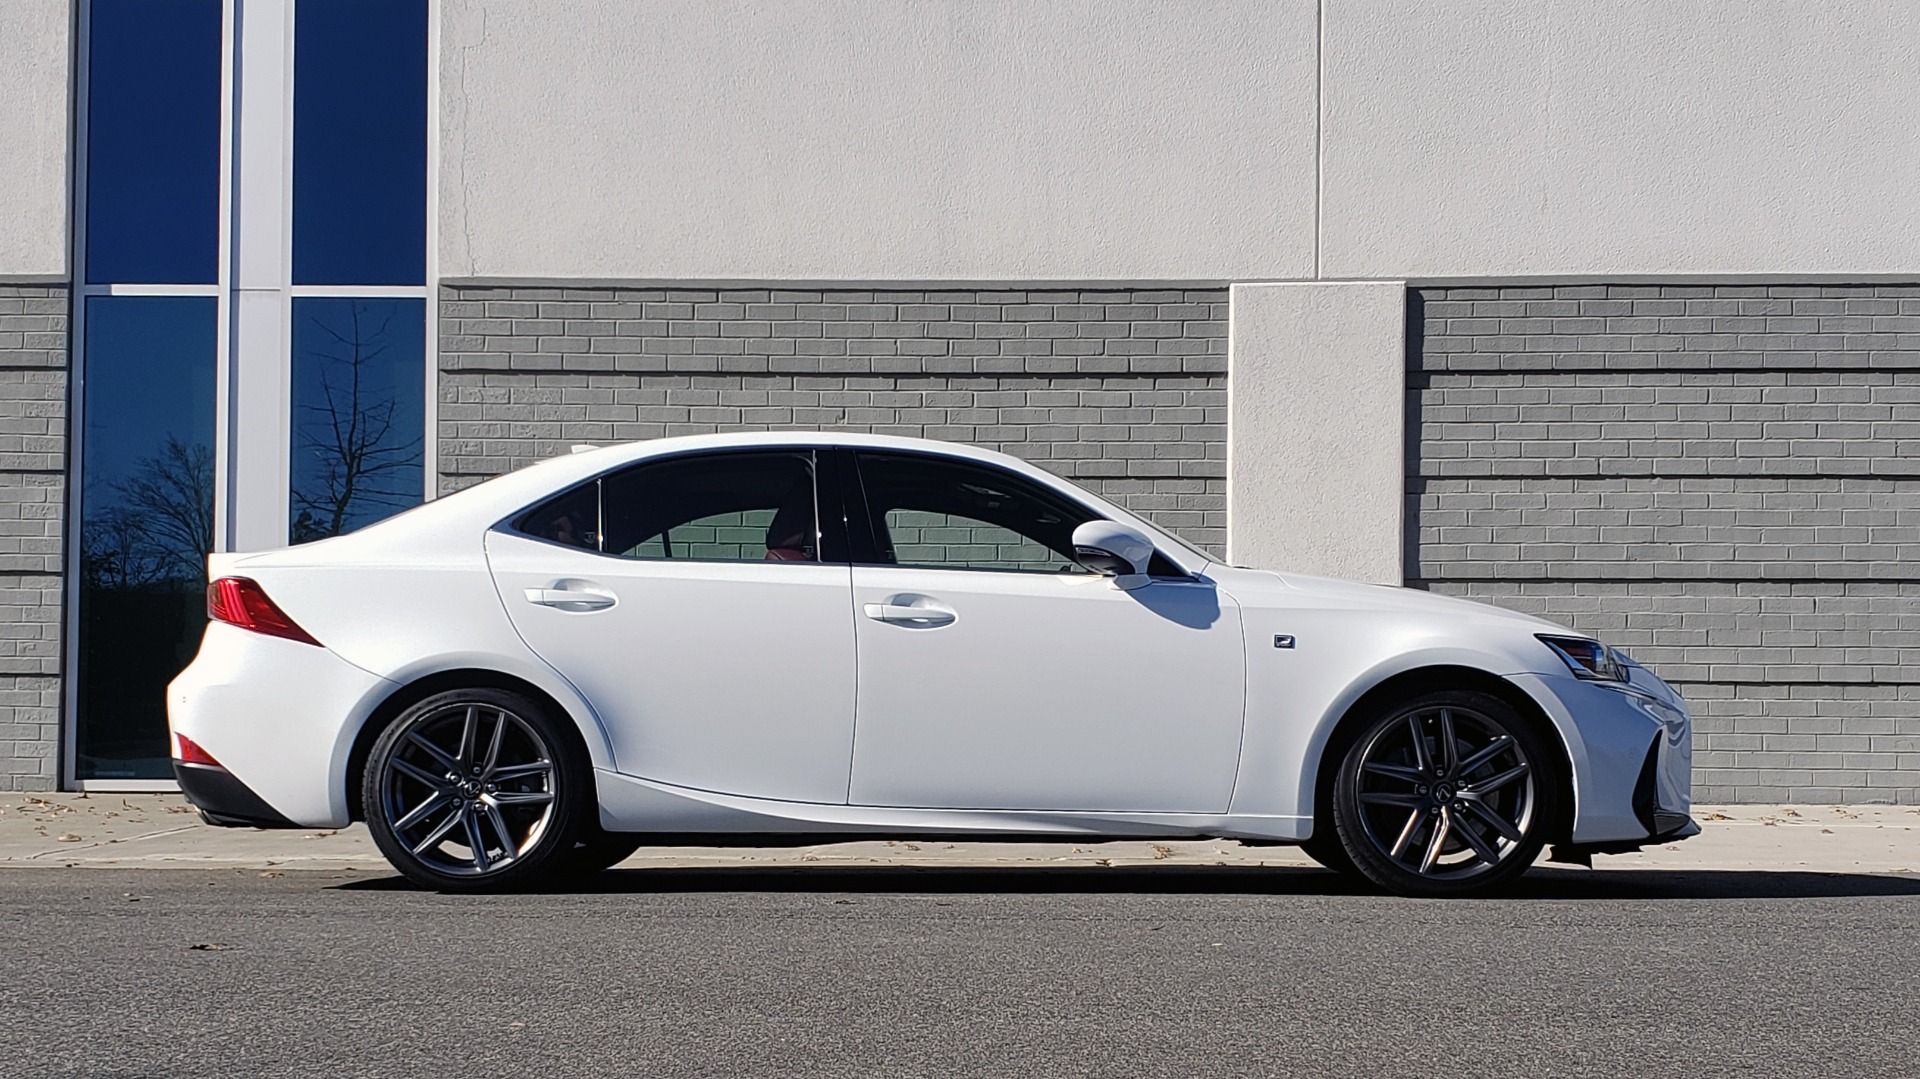 Used 2018 Lexus IS 300 F-SPORT / BSM / SUNROOF / REARVIEW / 18IN WHEELS for sale Sold at Formula Imports in Charlotte NC 28227 5